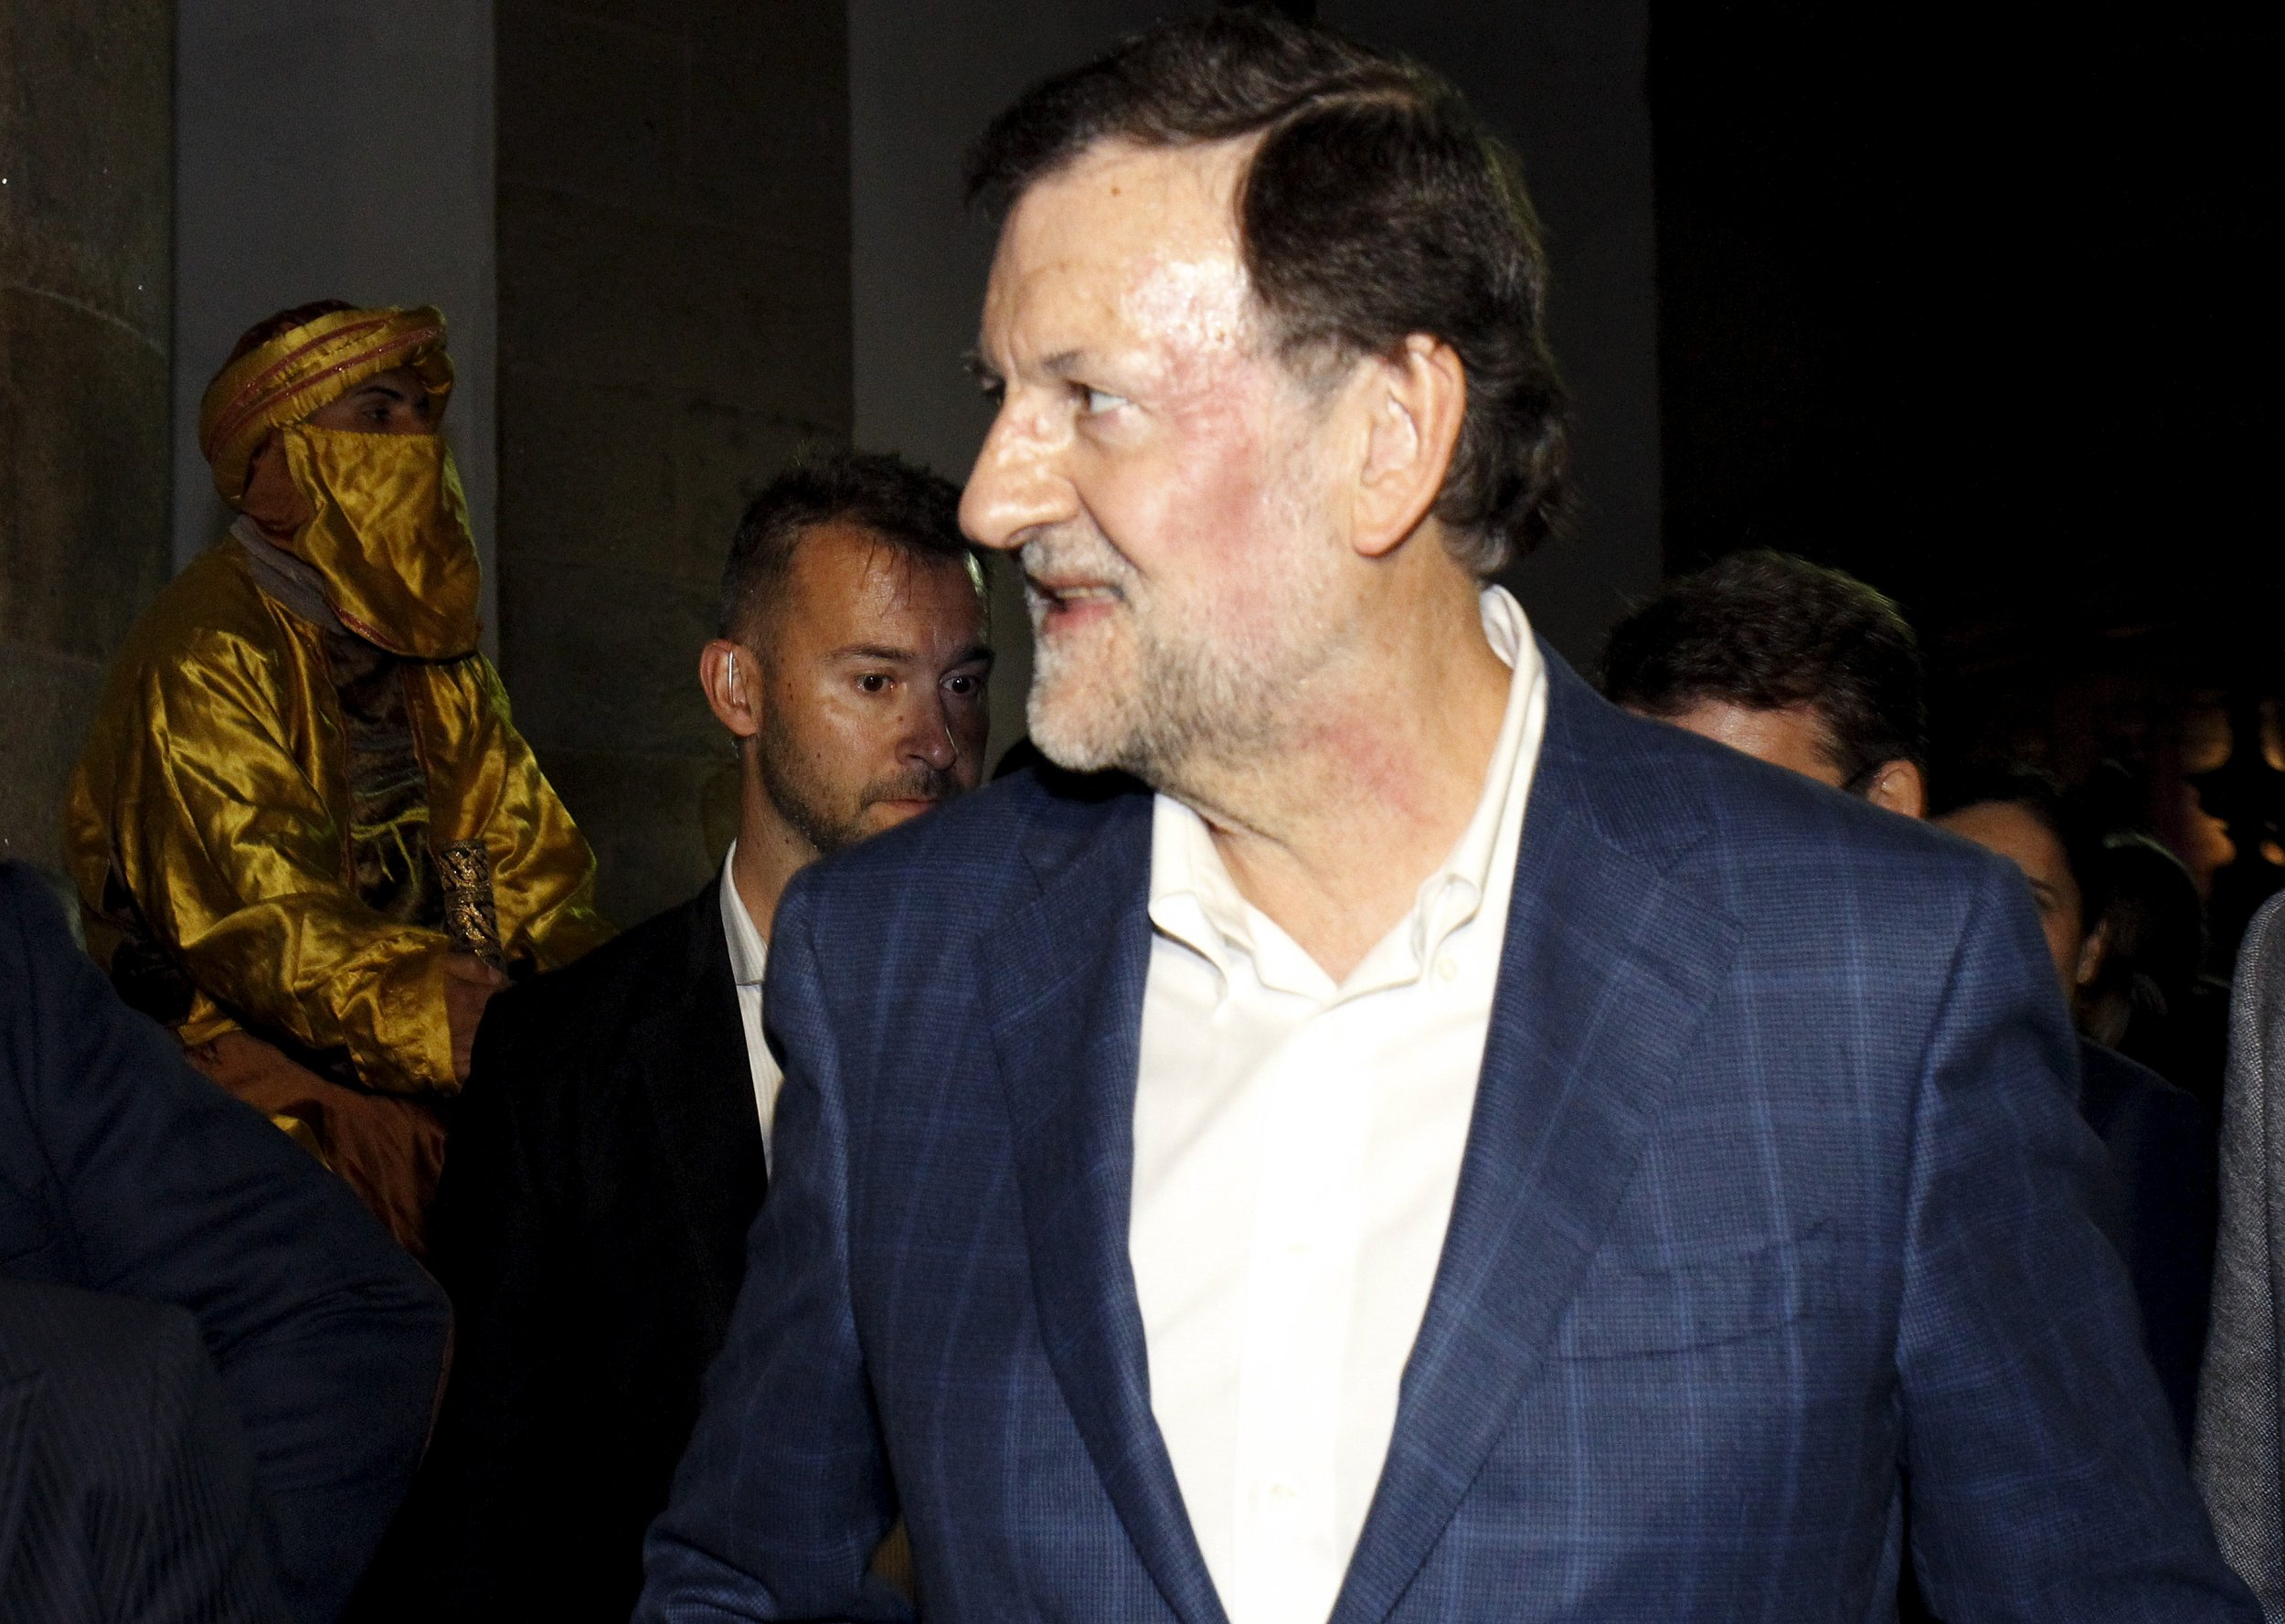 1217_Rajoy_punched